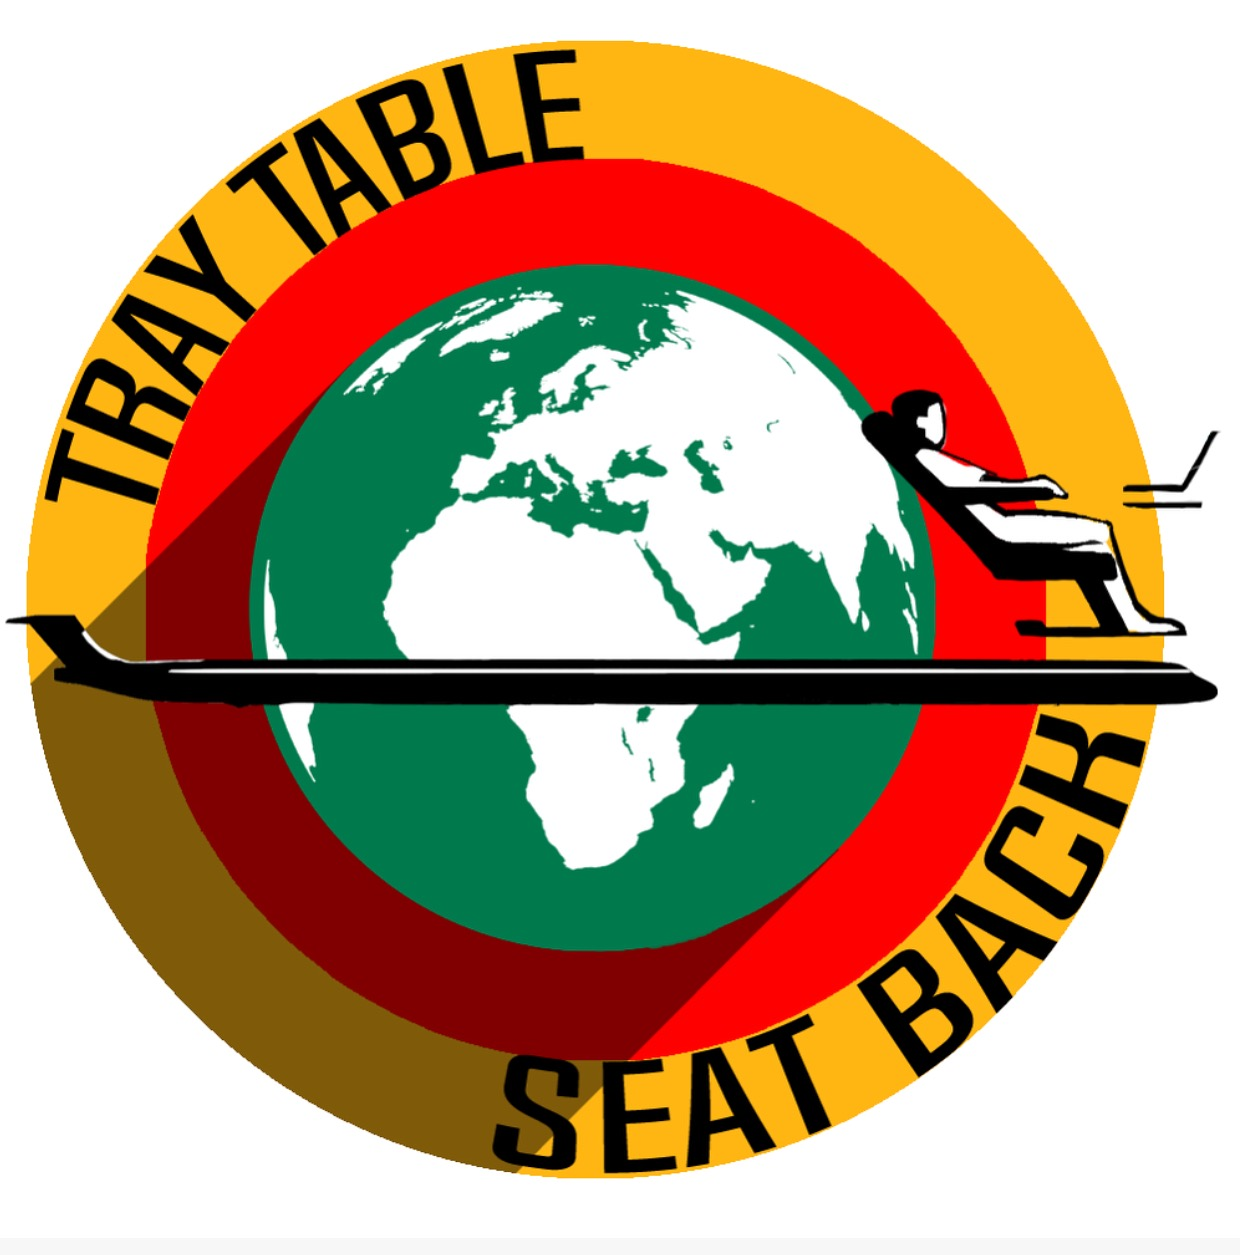 Tray Table Seat Back